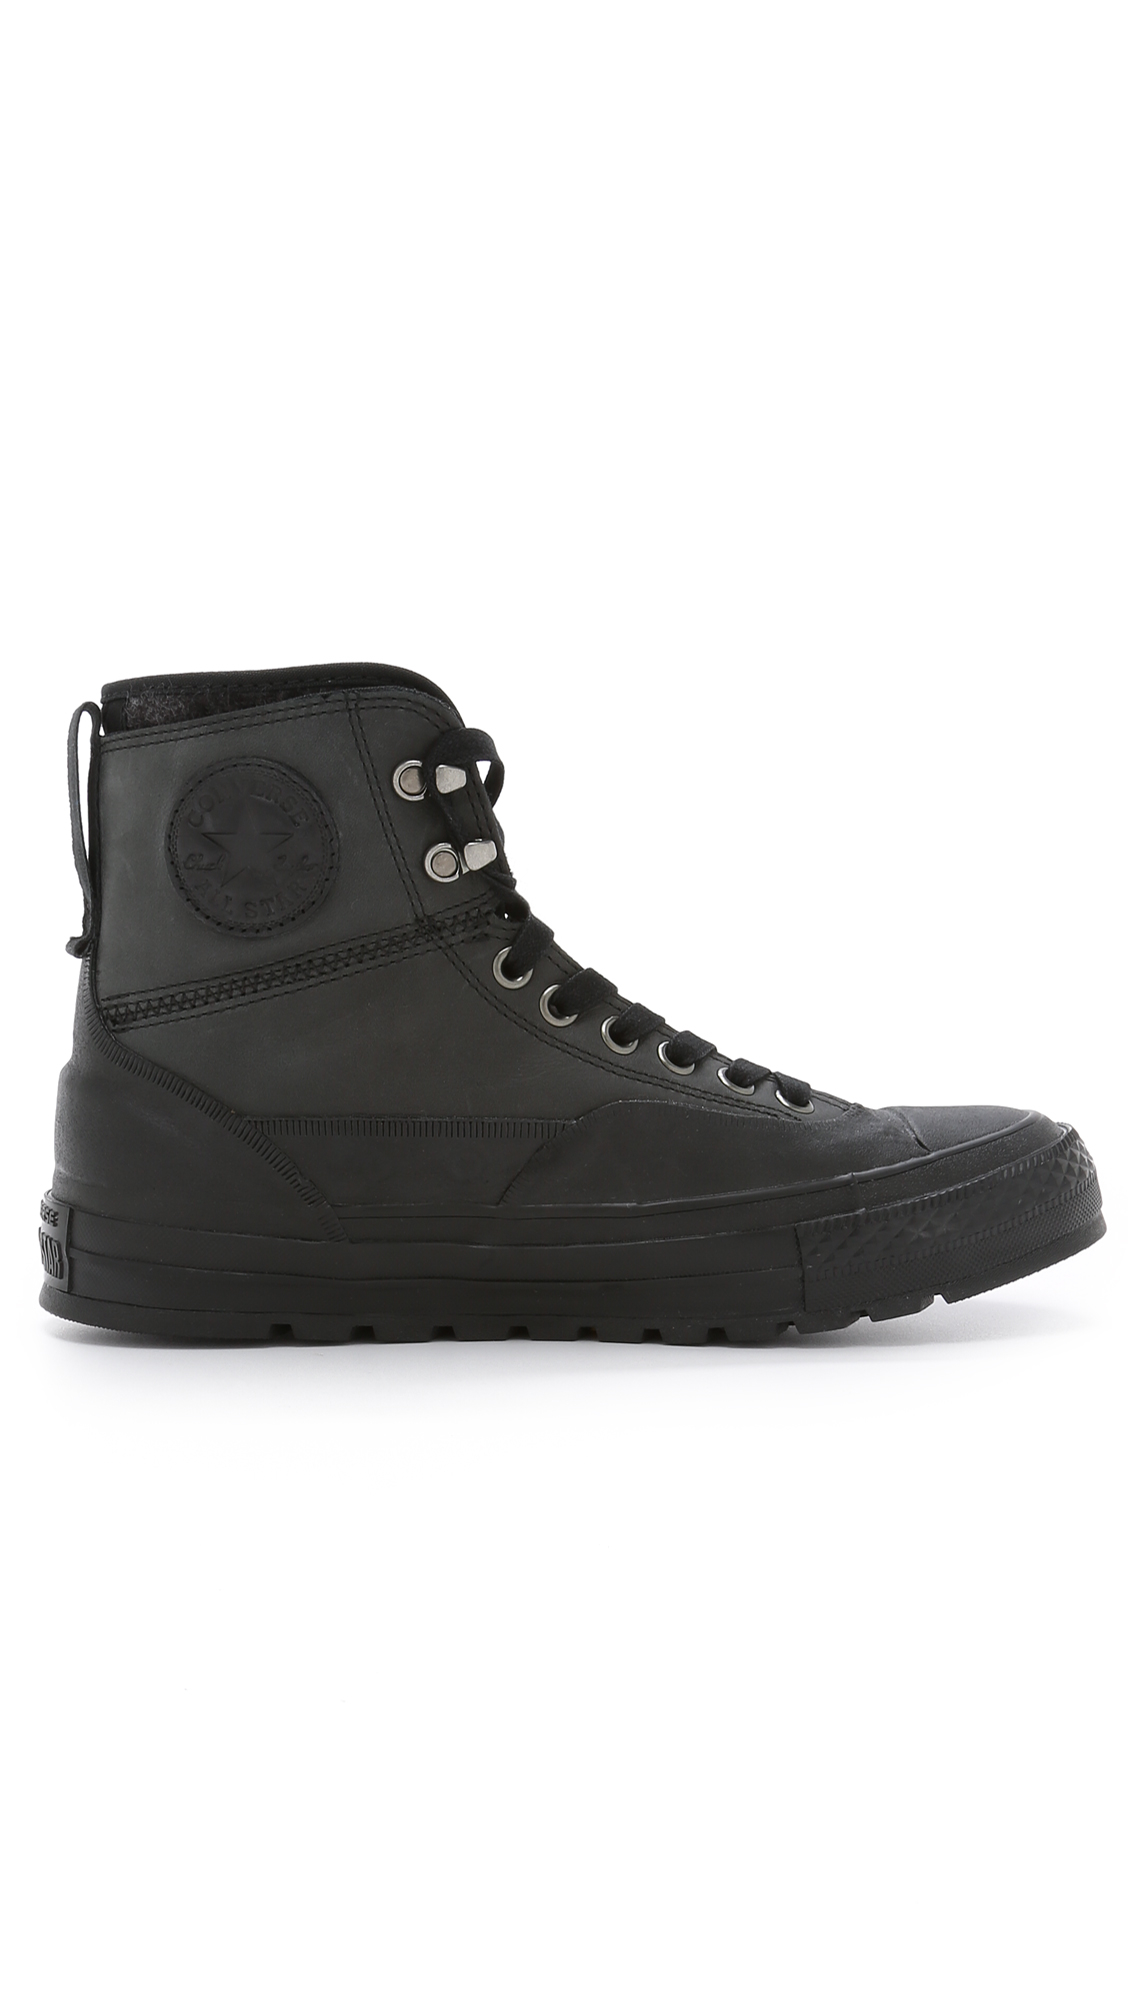 cbb9ac844f9b Lyst - Converse Chuck Taylor All Star Tekoa Boots in Black for Men